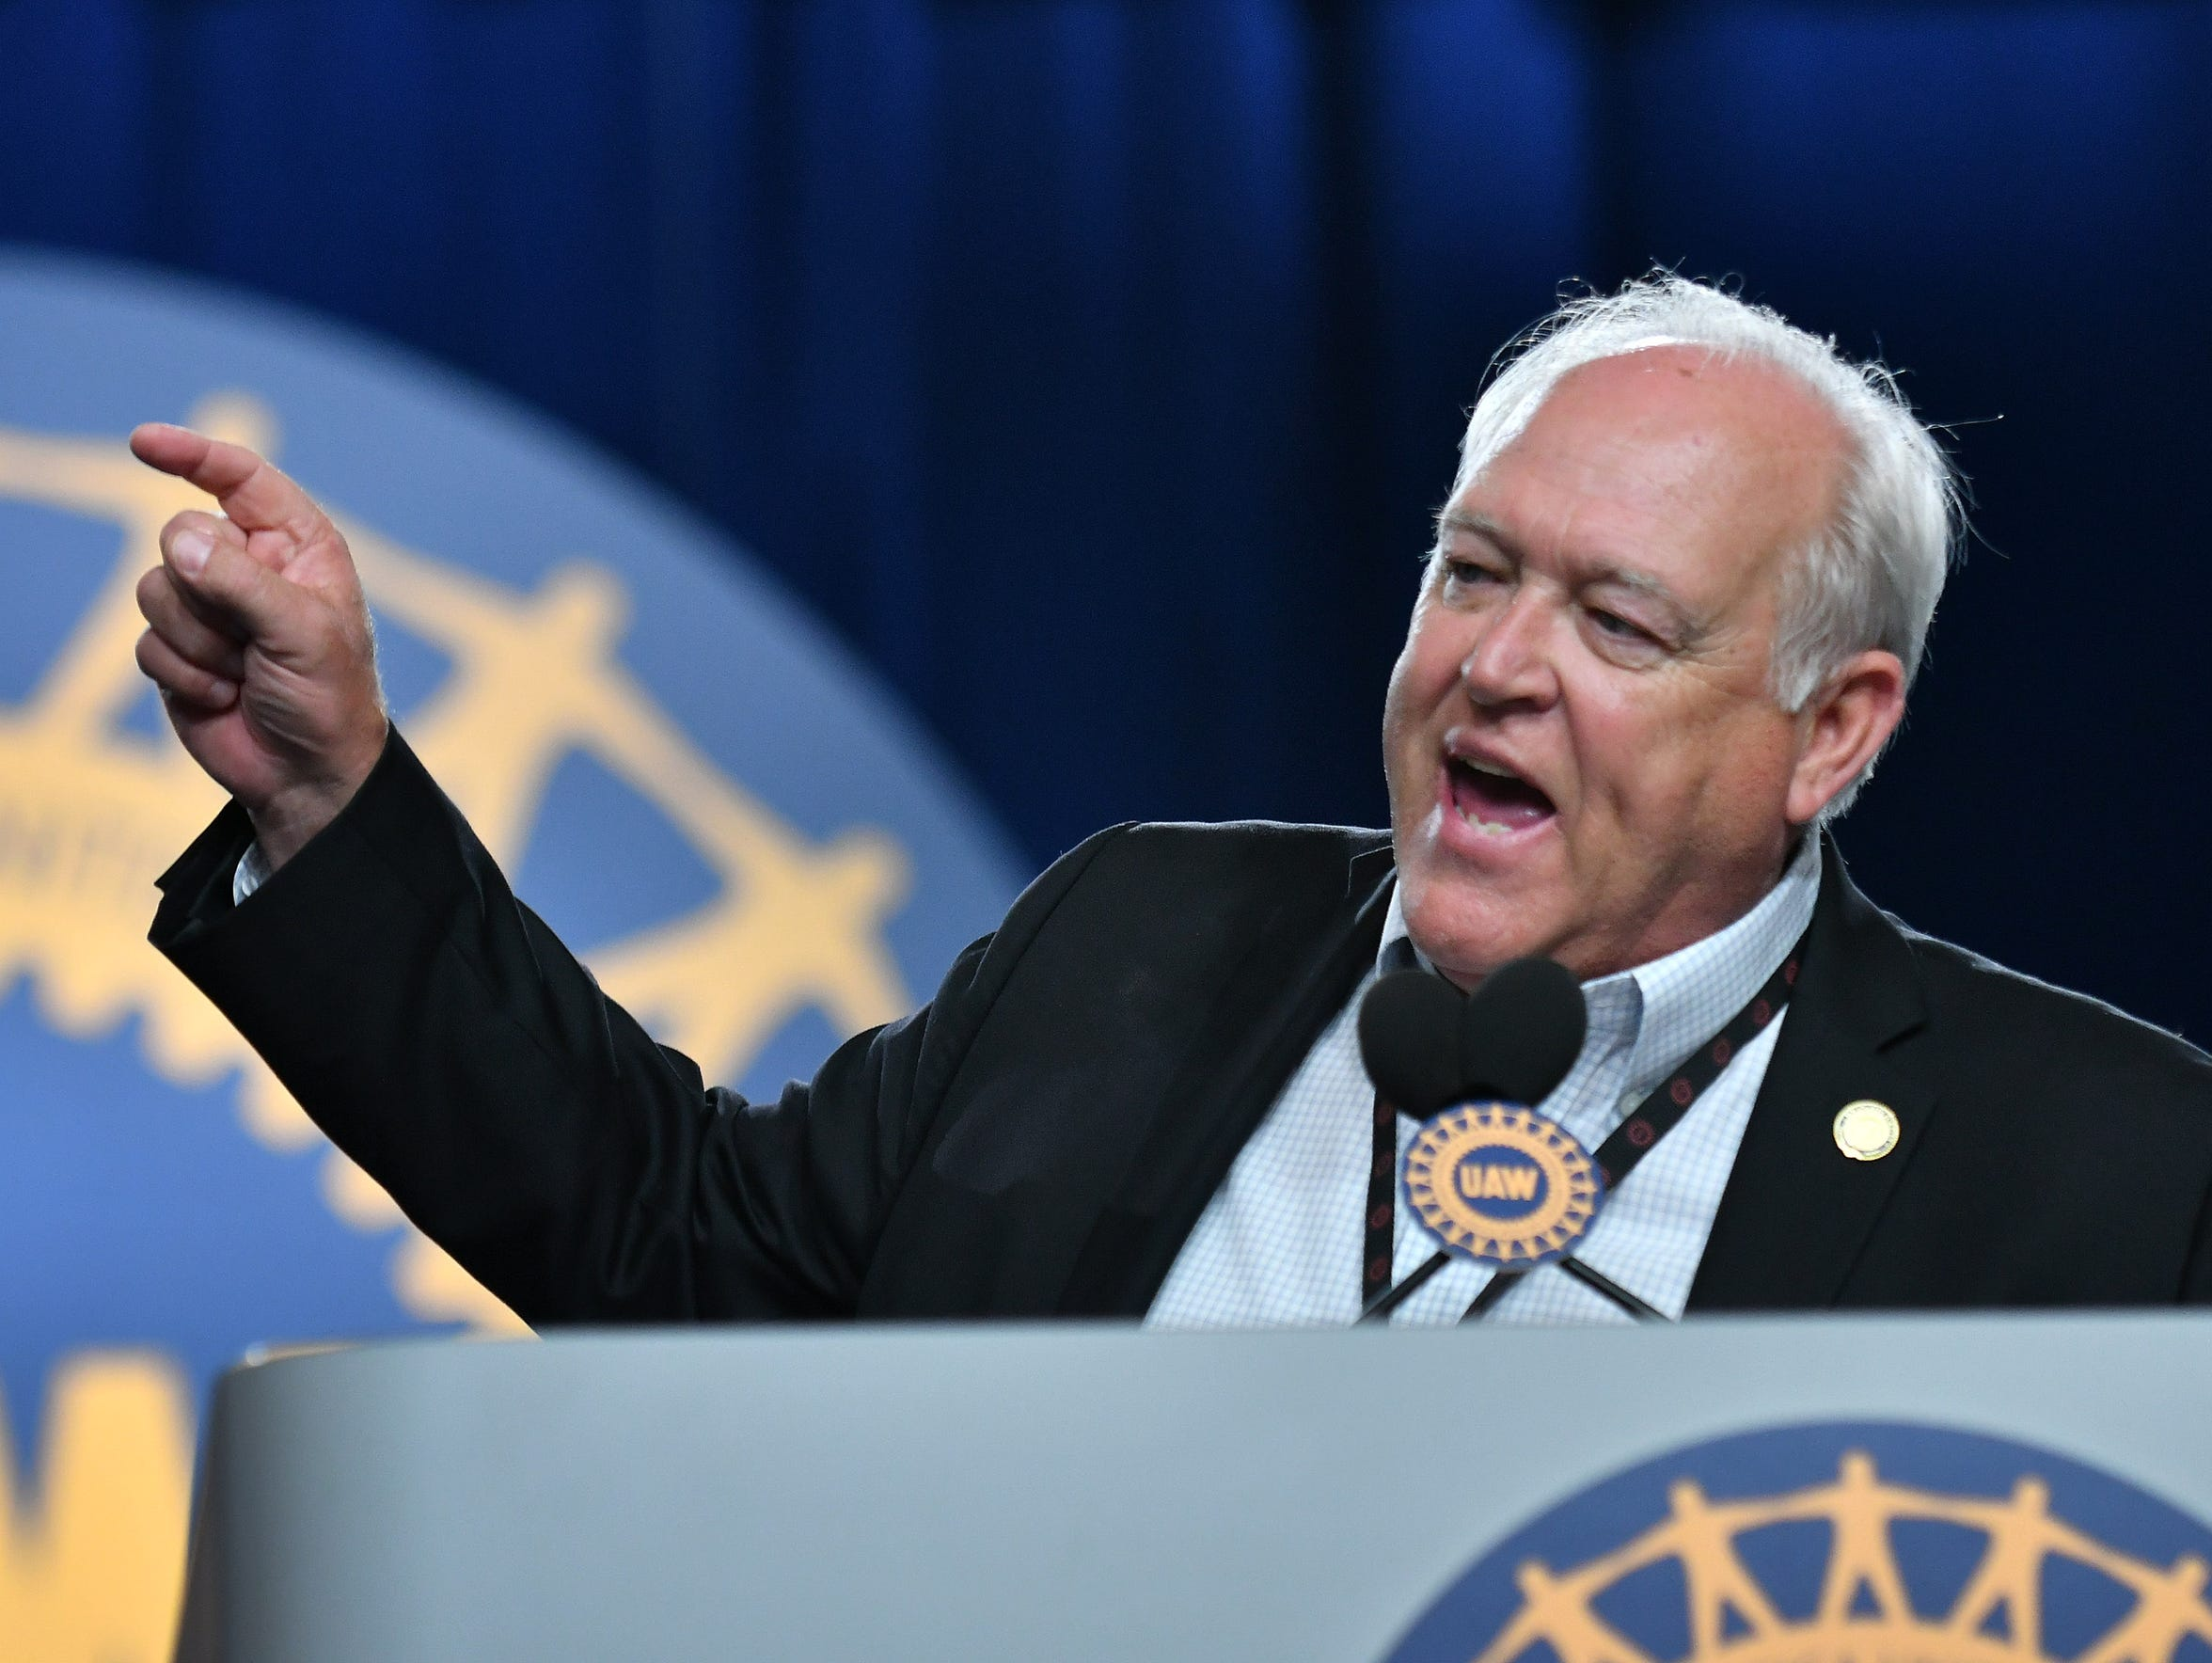 UAW president Dennis Williams speaks at the UAW 37th